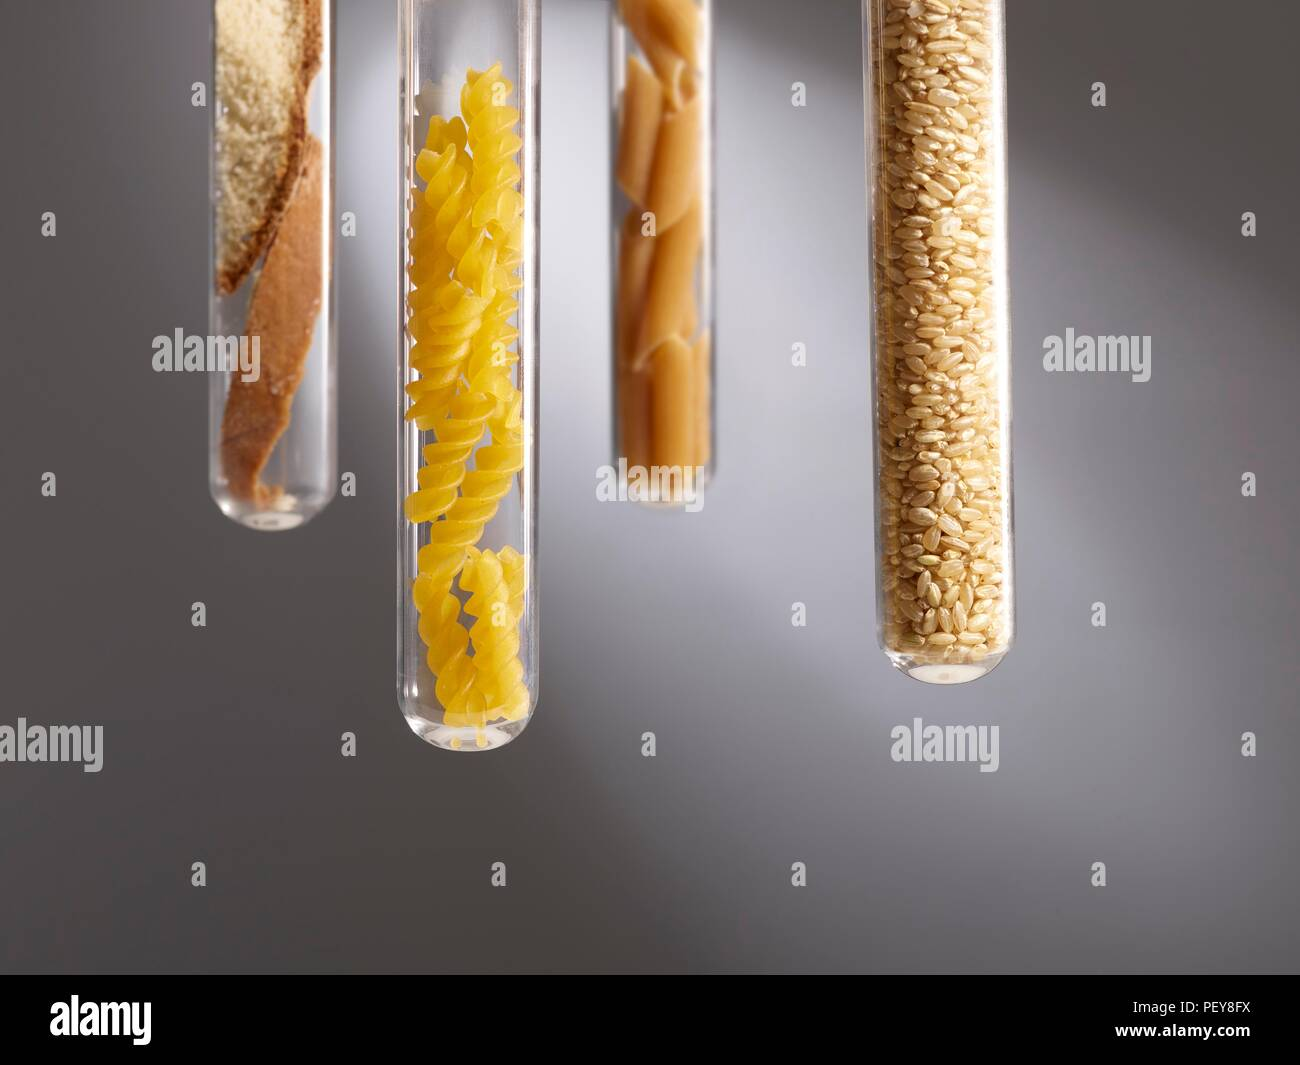 Carbohydrate foods in test tubes, studio shot. - Stock Image